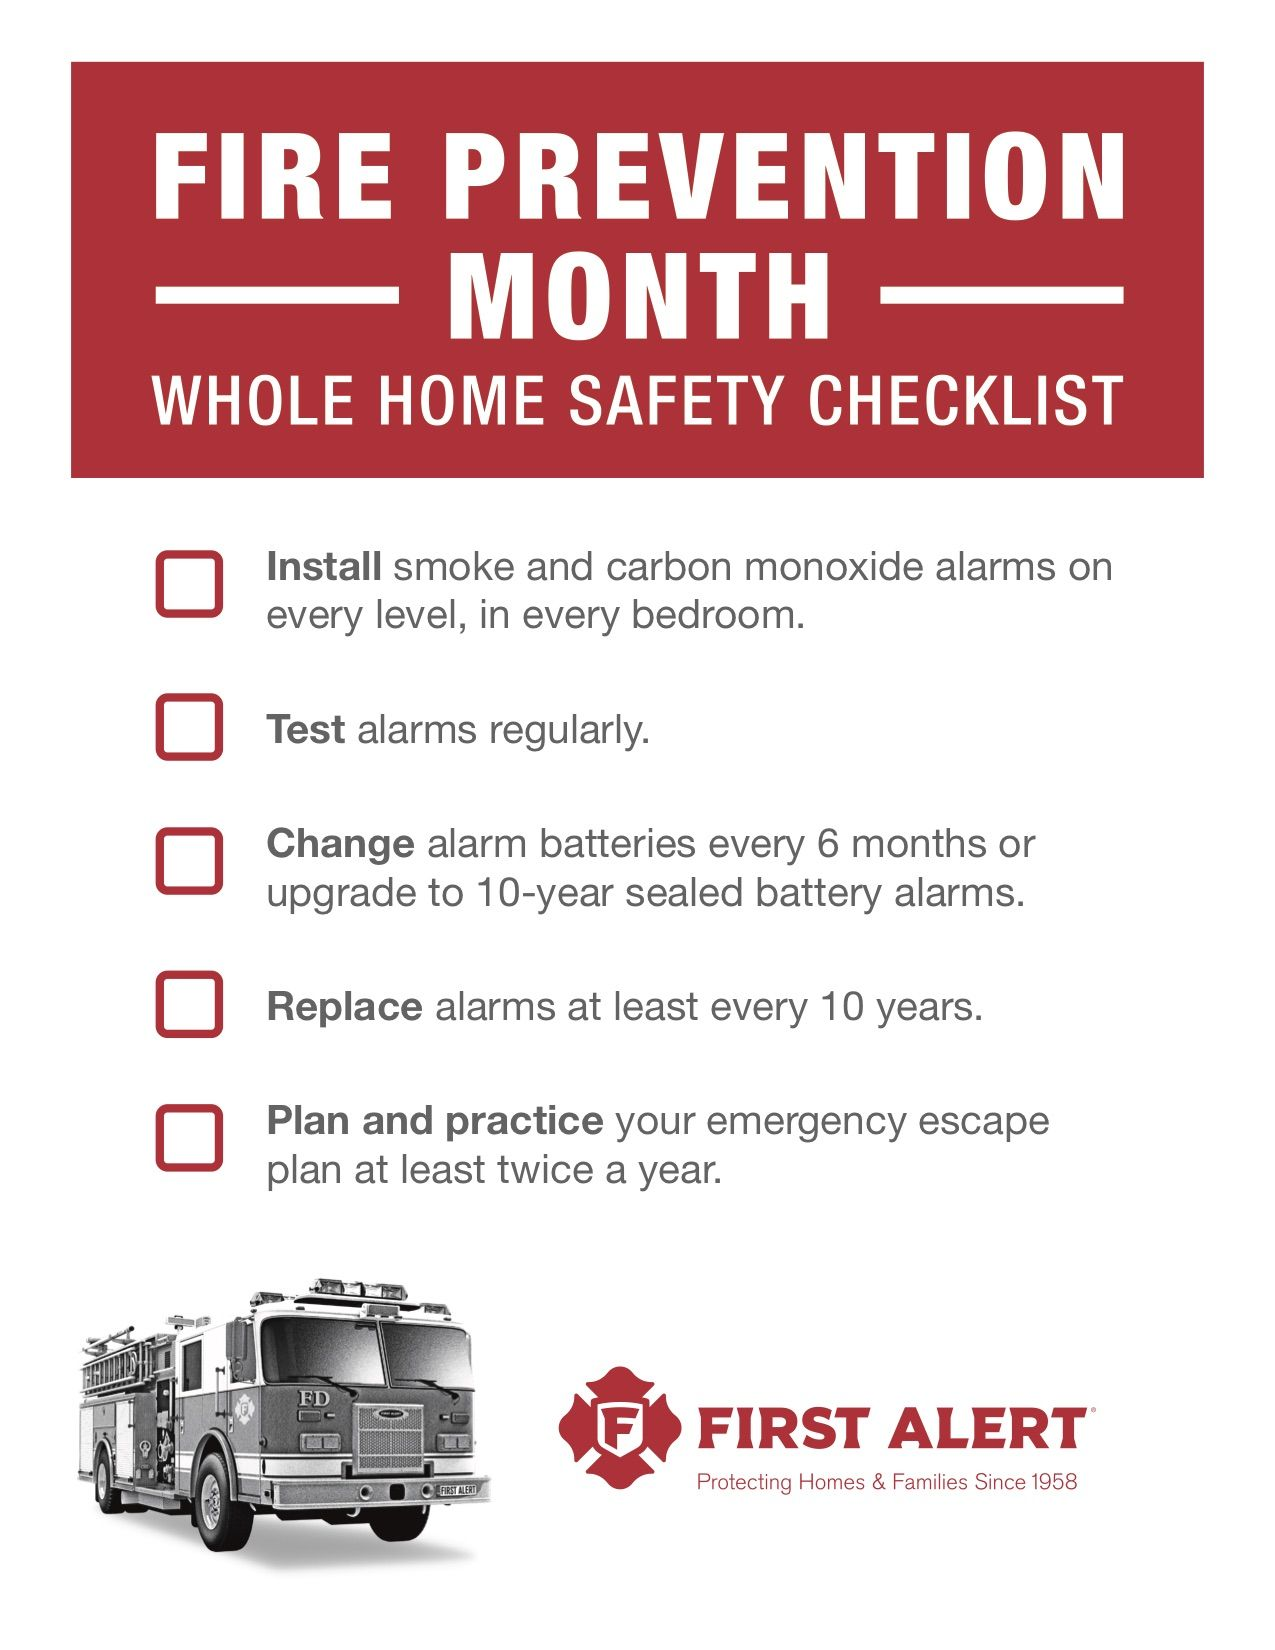 Fire Prevention With First Alert (With images) Fire